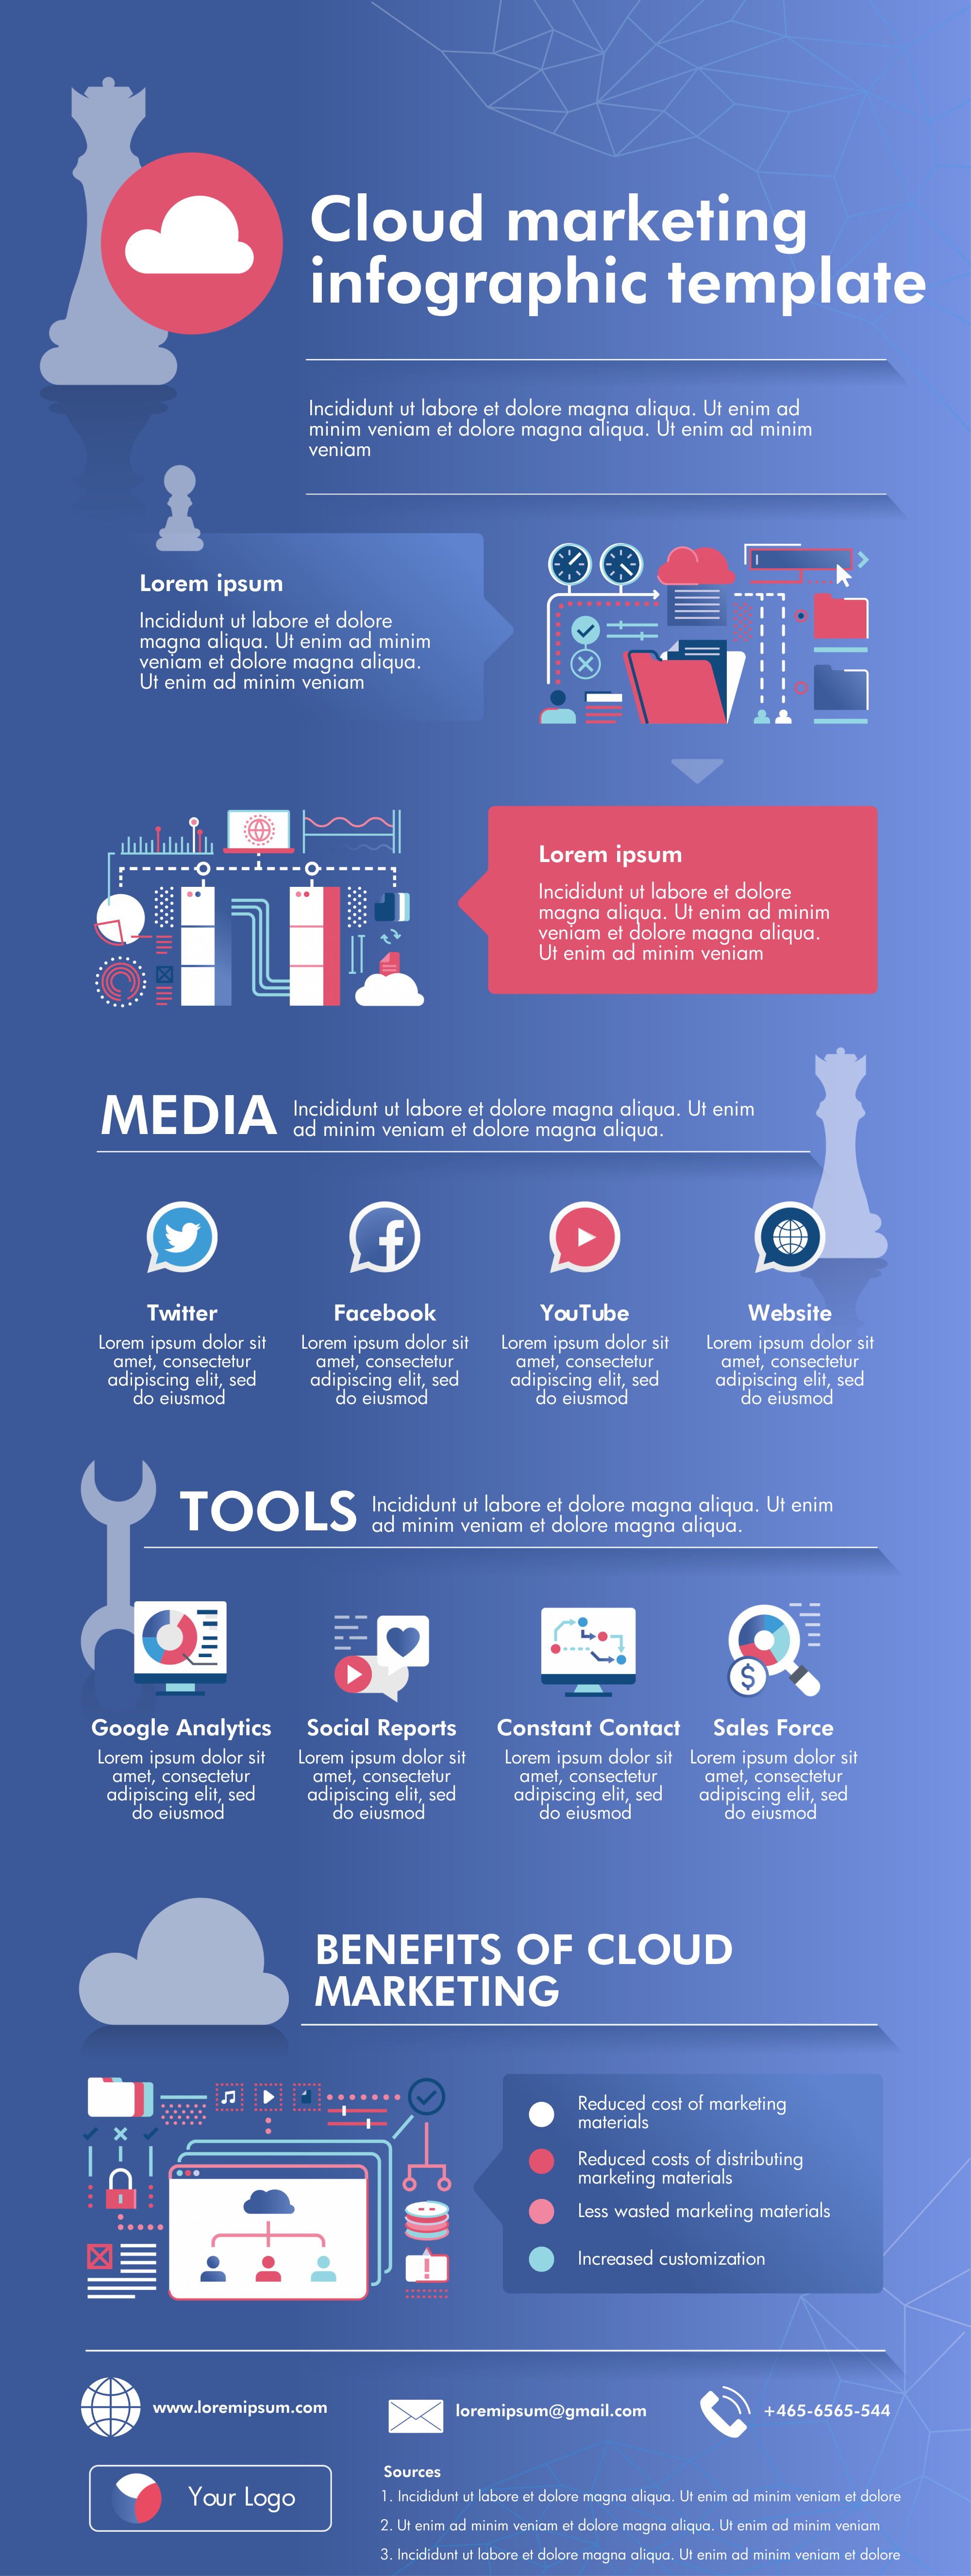 Cloud marketing infographic template